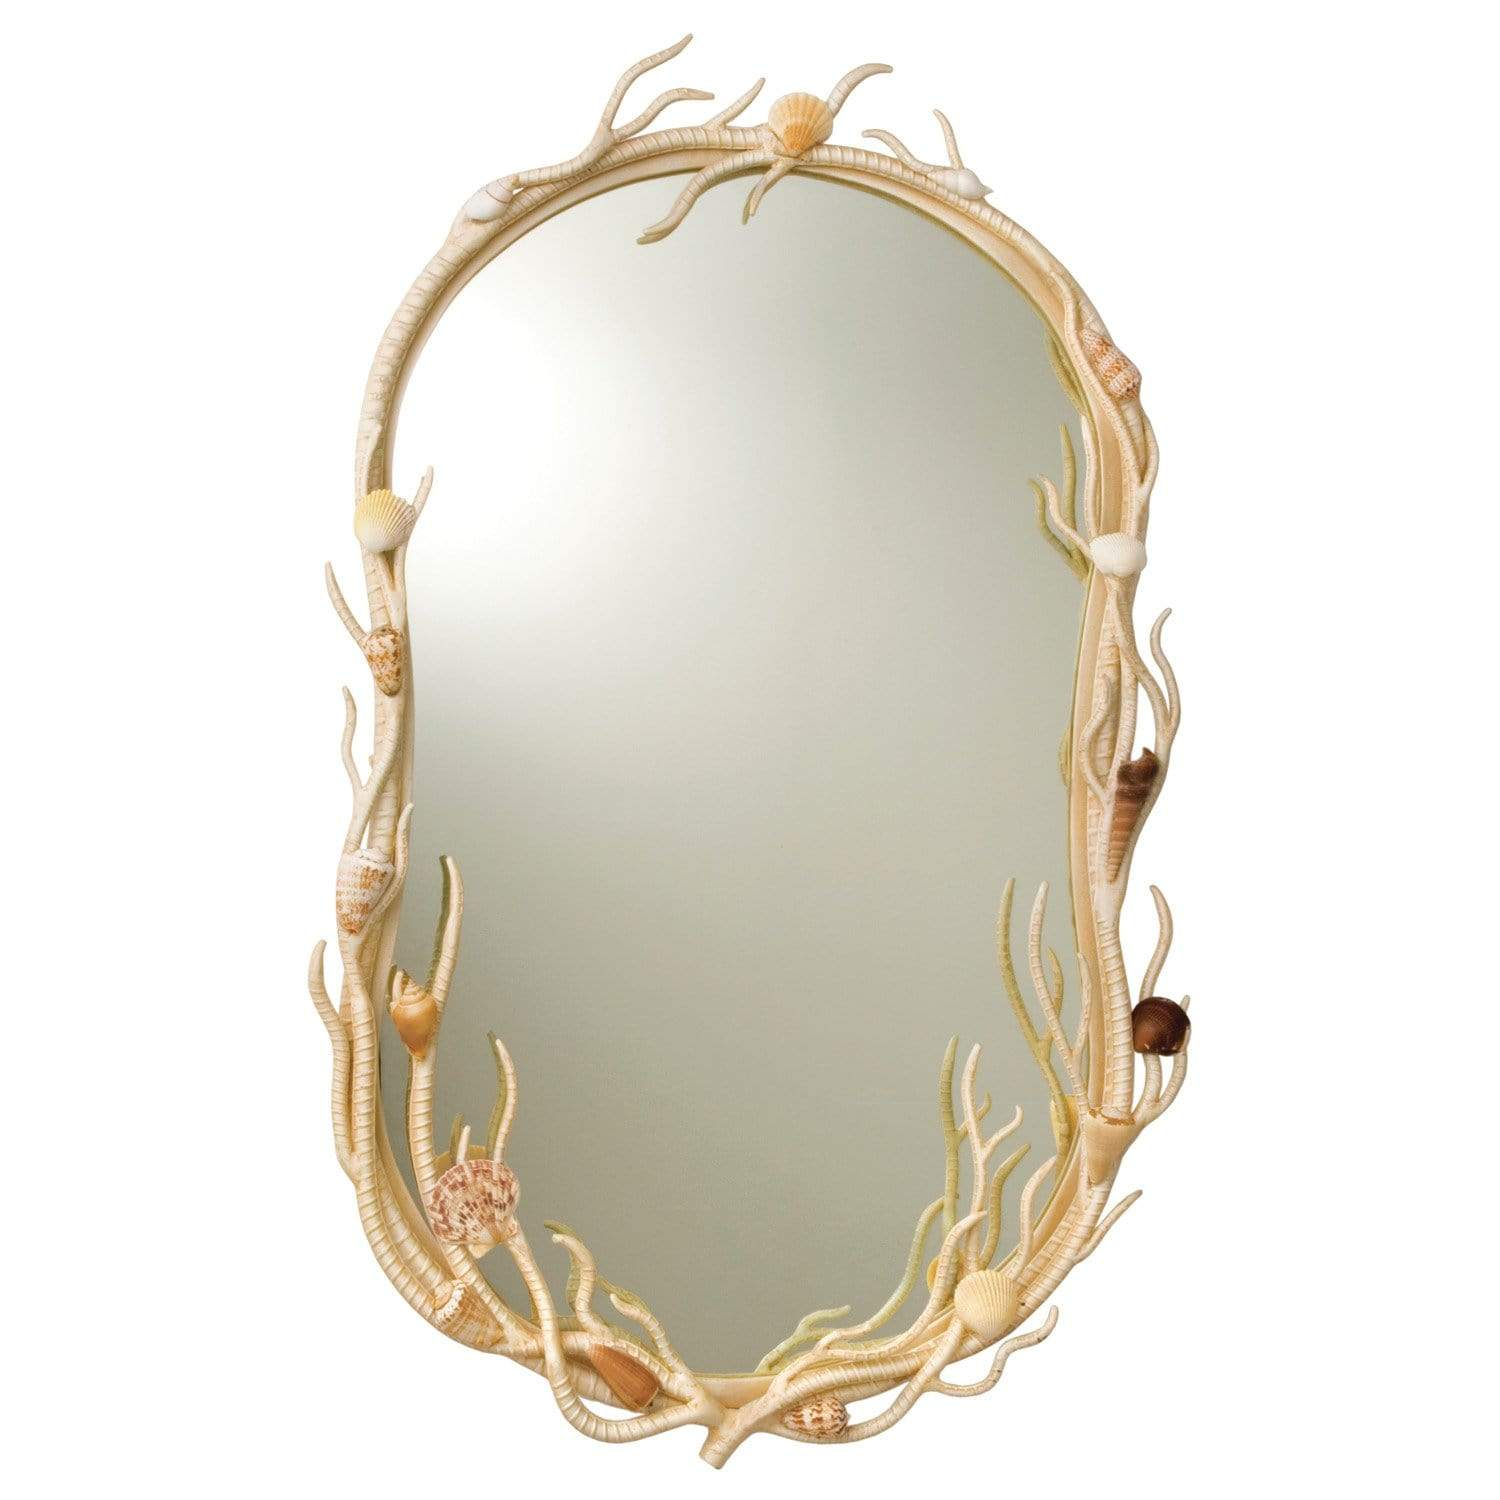 Kalco Lighting Mirrors Coral Atlantis Oval Mirror By Kalco Lighting 6070